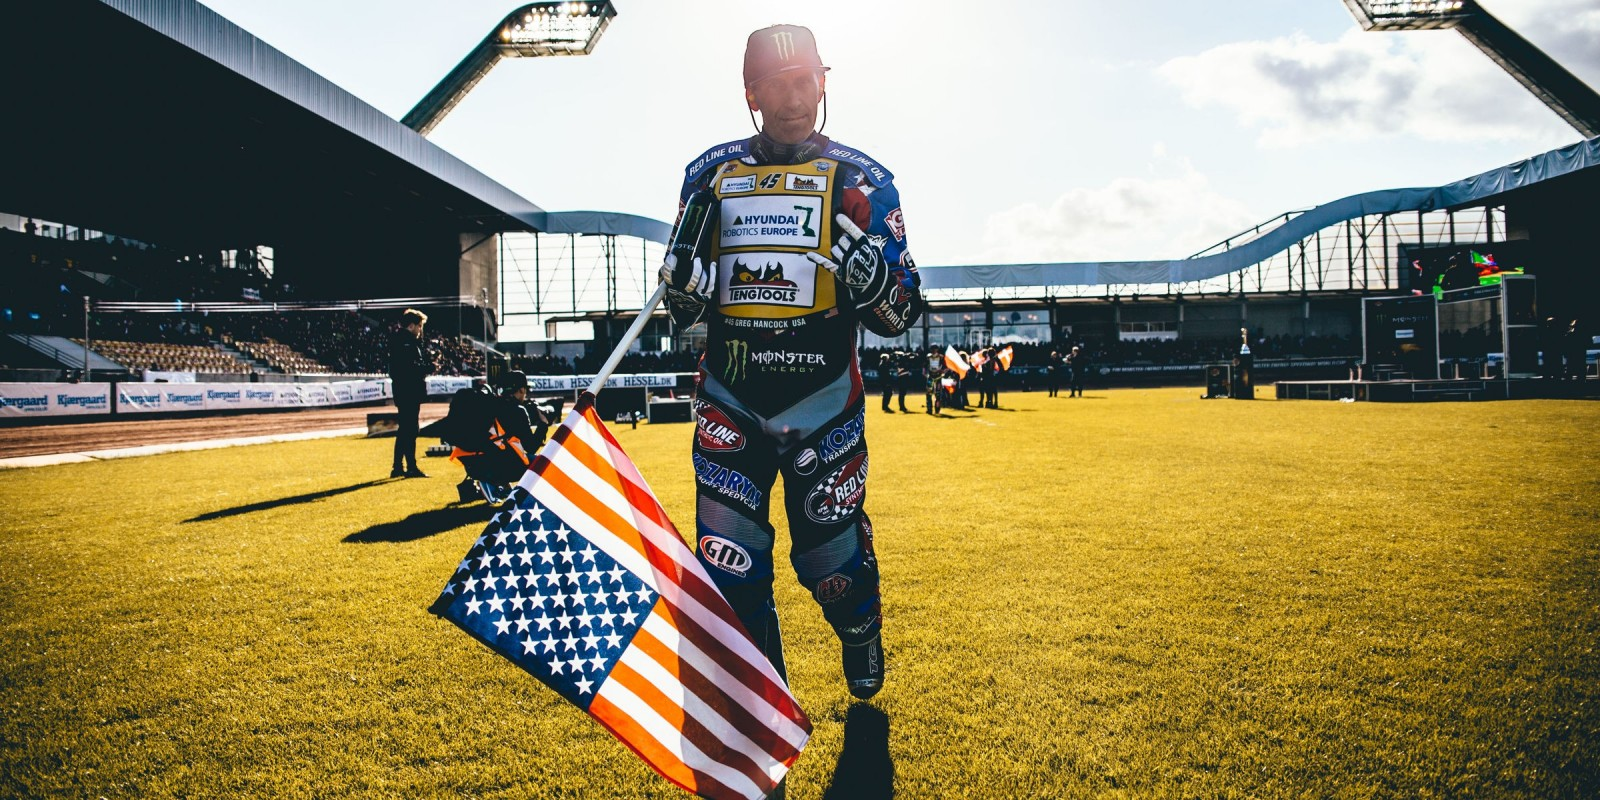 Images of Greg Hancock from the Danish SGP